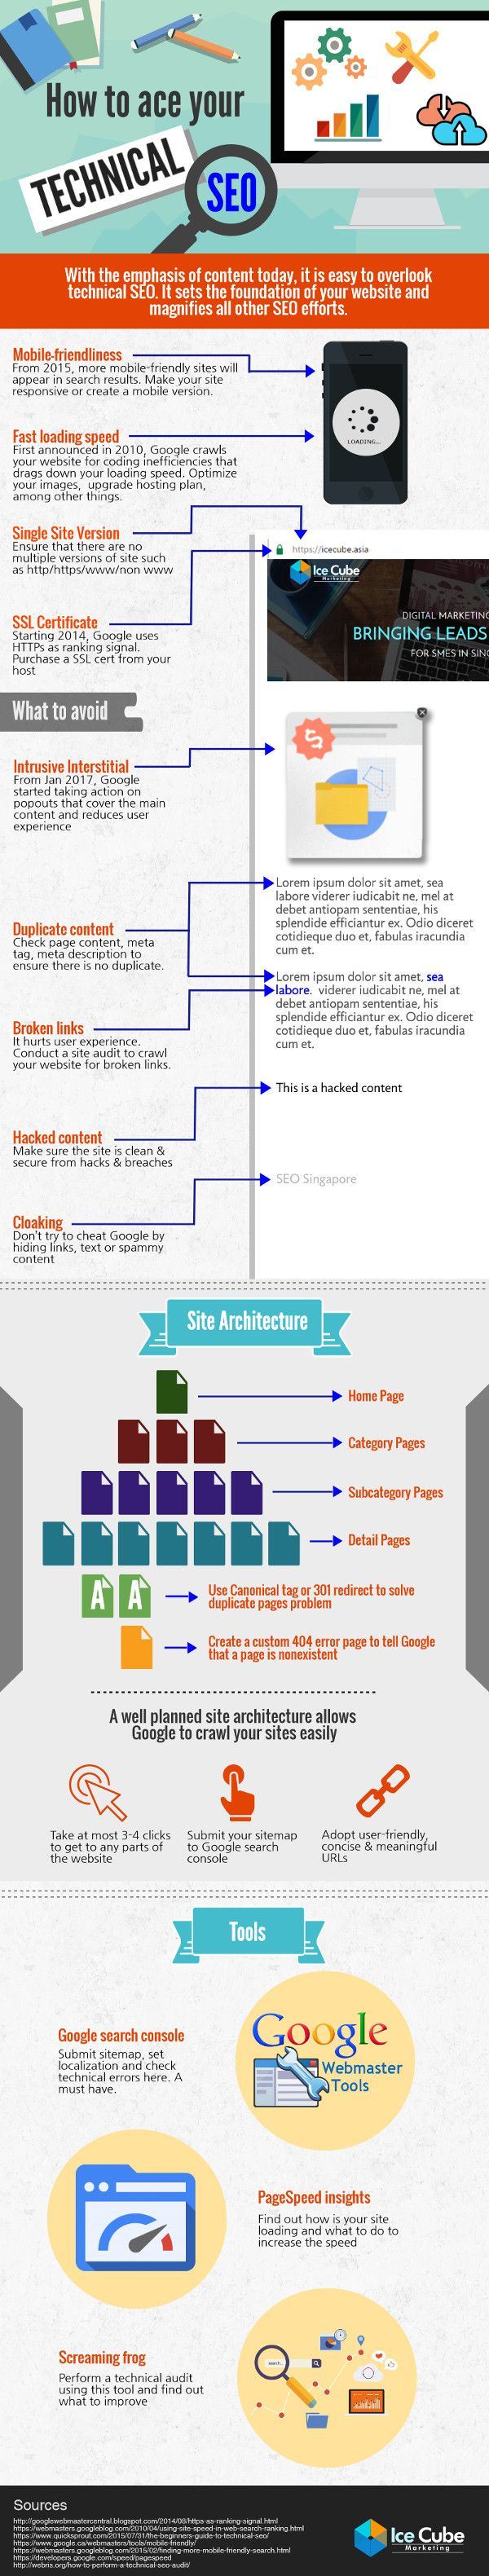 Technical SEO 101: Get Your Websites Ranked on Google [Infographic]